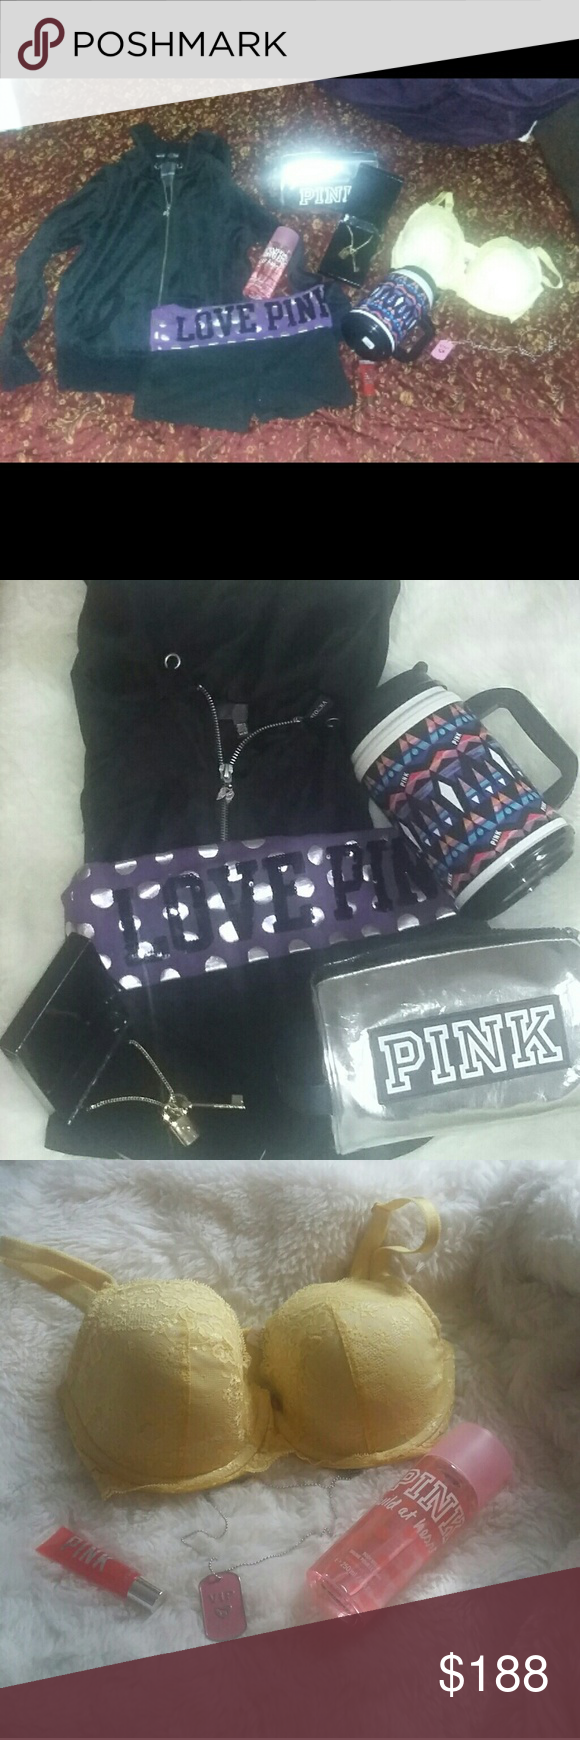 VS BUNDLE VIEW ALL PICS!! No flaws. Size Medium, no flaws black velvet full zip hoodie.  Angel wing zipper, nothing on the back.  Size small yoga shorts No rips or tears, all sequins are intact. Pink cosmetic bag and an unused chug mug along with the limited edition Scadalous necklace.34 DD demi lined push up bra. Only worn a few times. Has been washed.  Wild at heart body spray, slightly used.  Limited edition VIP dog tag chain.  Unused lip gloss. PINK Victoria's Secret Intimates…